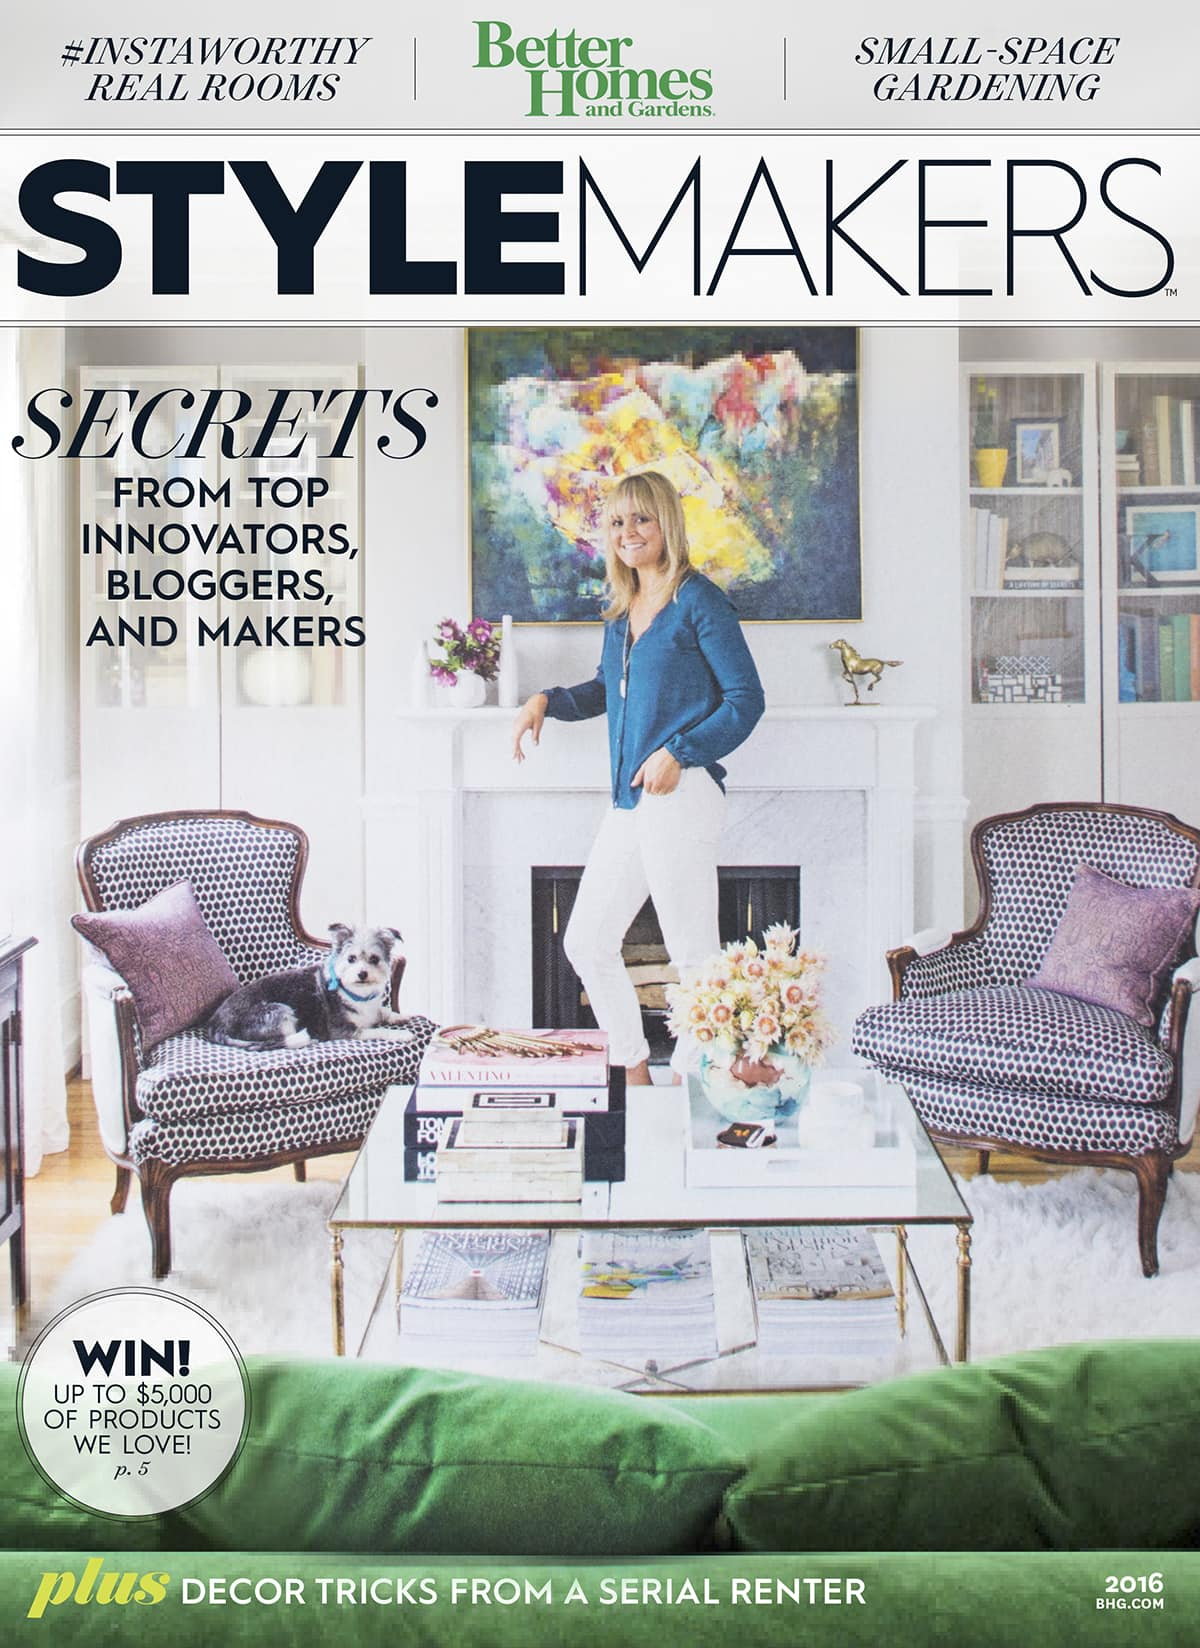 Better Homes and Gardens Stylemaker Issue 2016